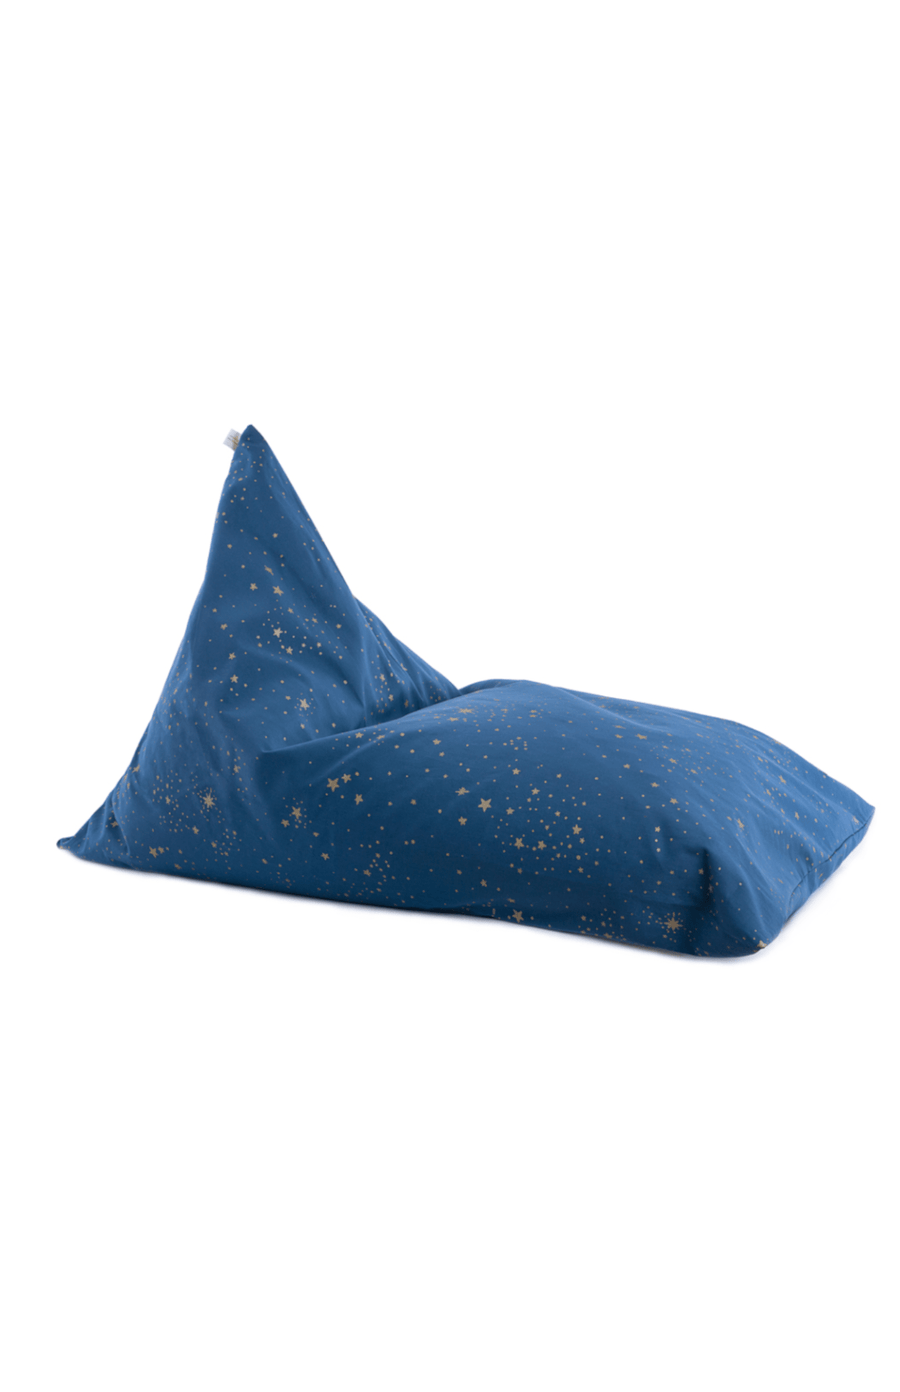 Nobodinoz Essaouria Bean Bag - Gold Stella/Night Blue